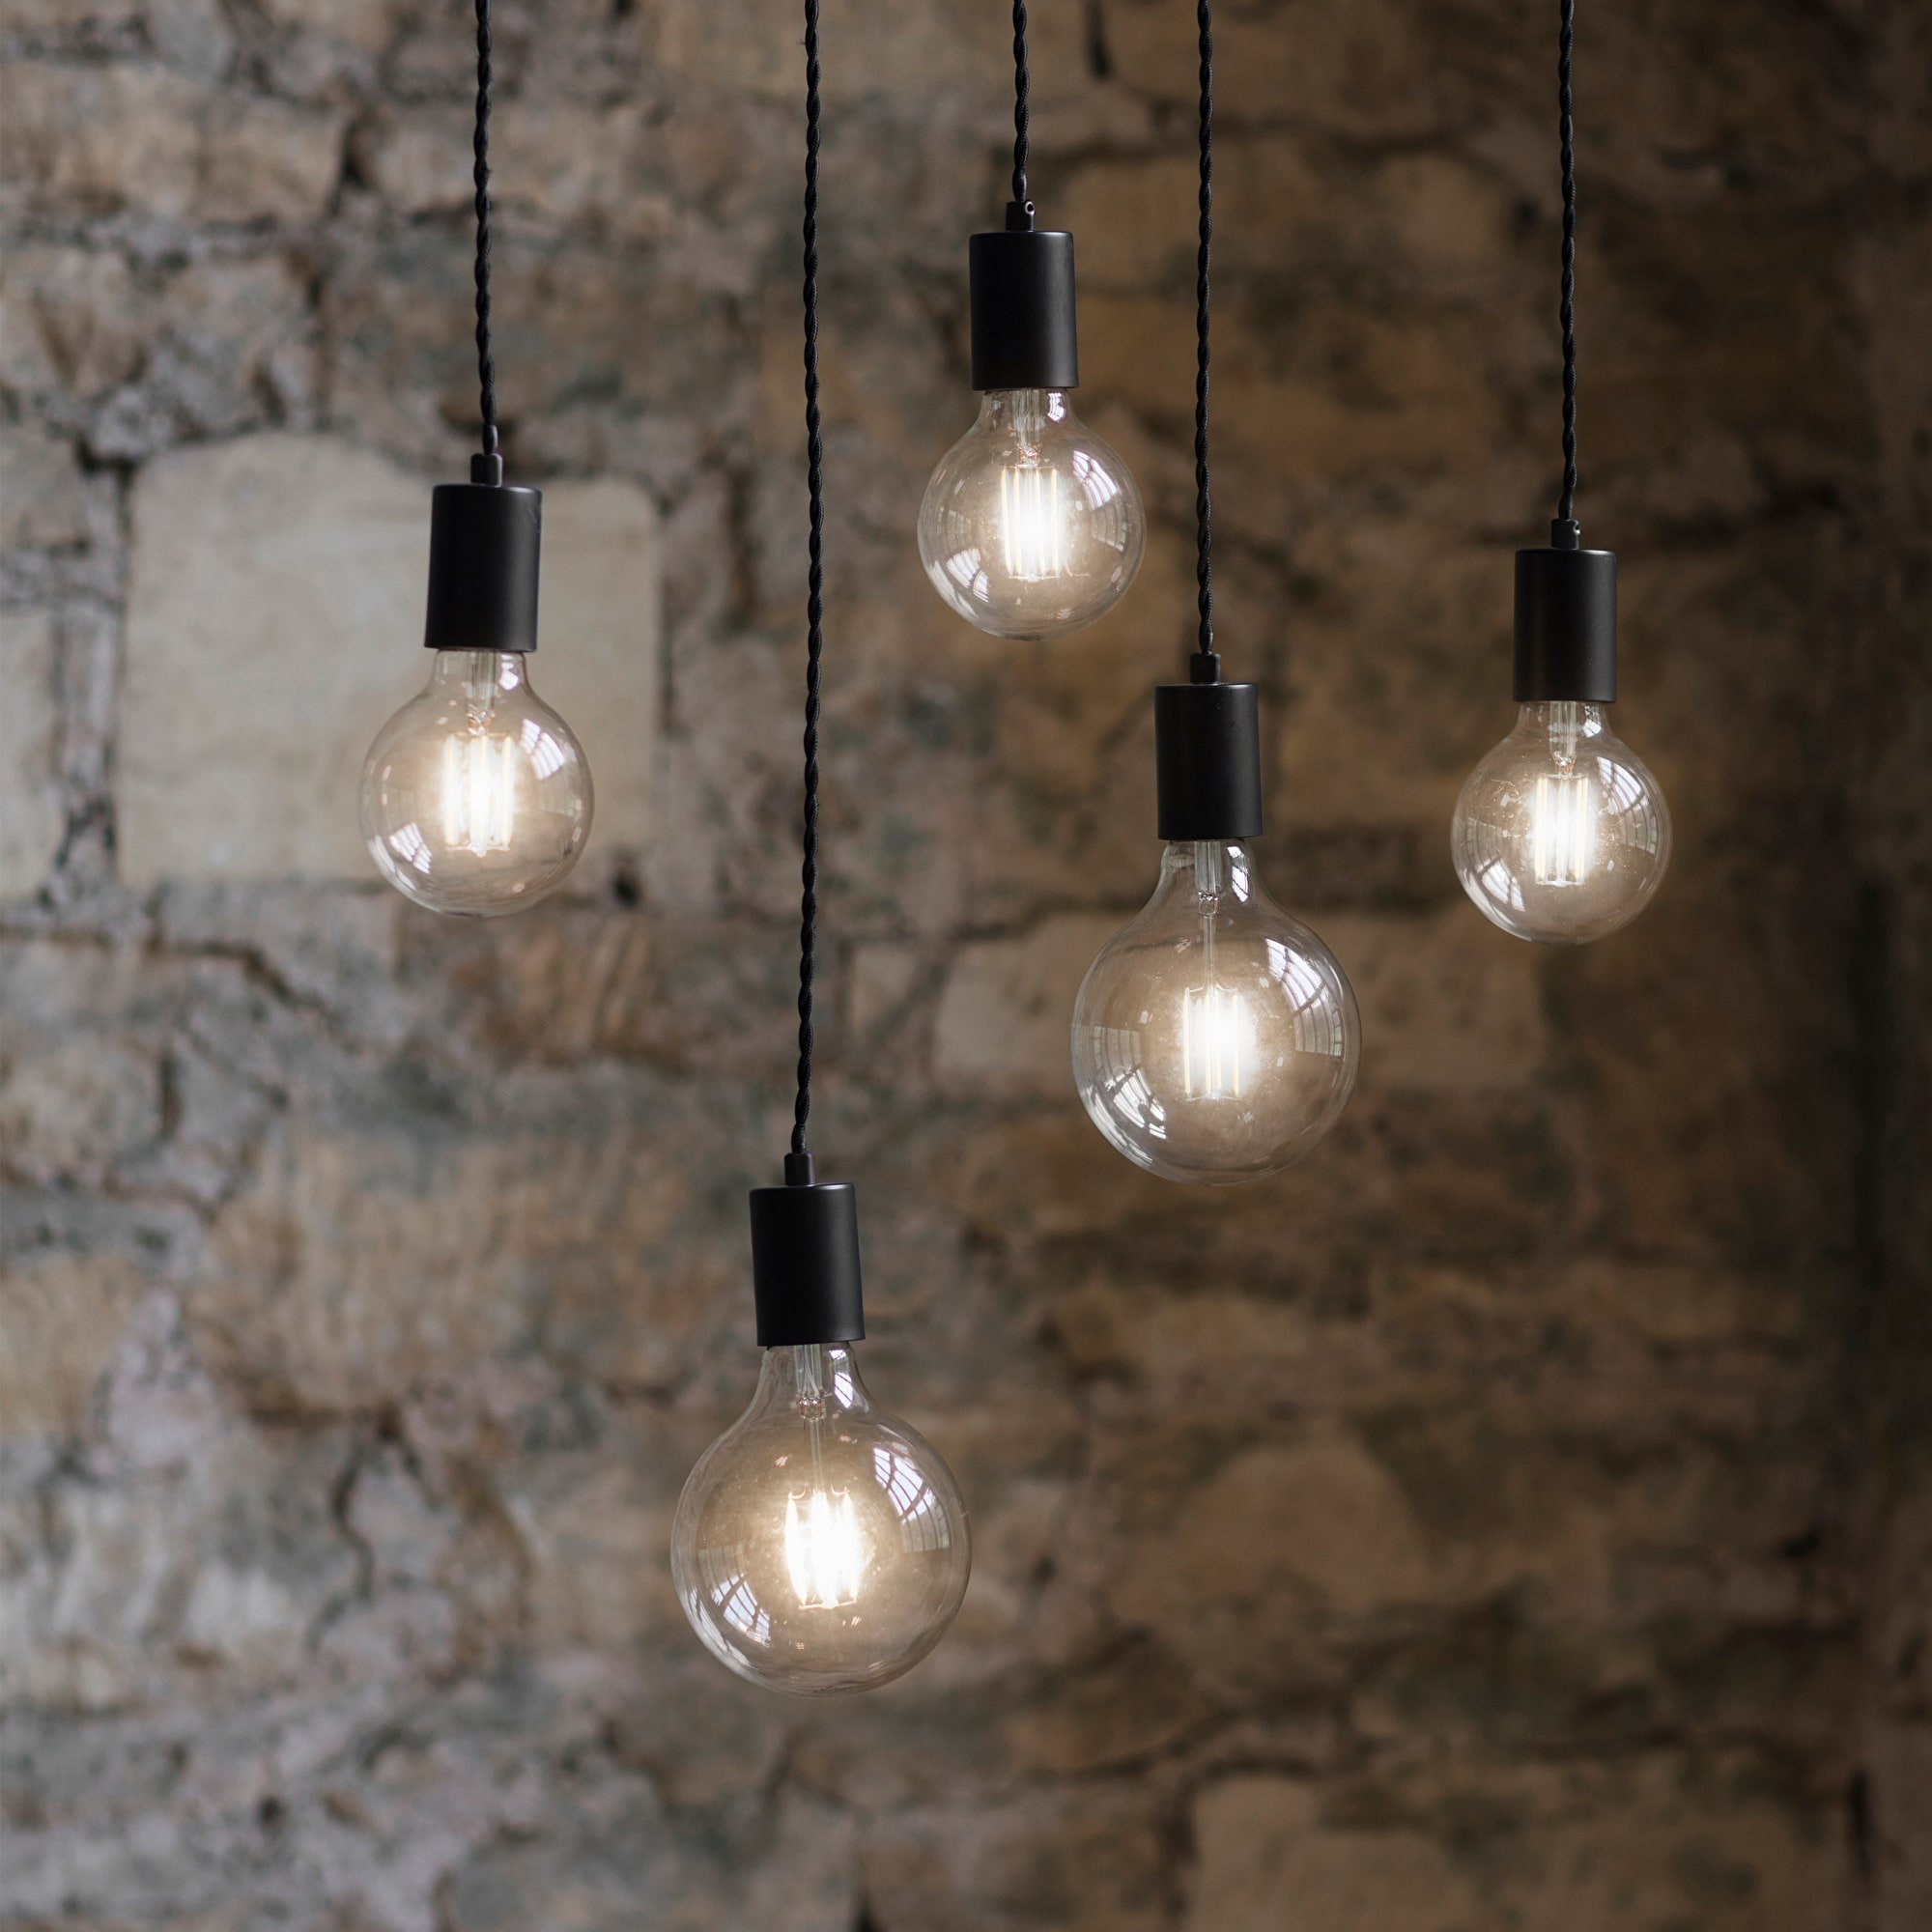 City 5 Pendant Light - save 15%